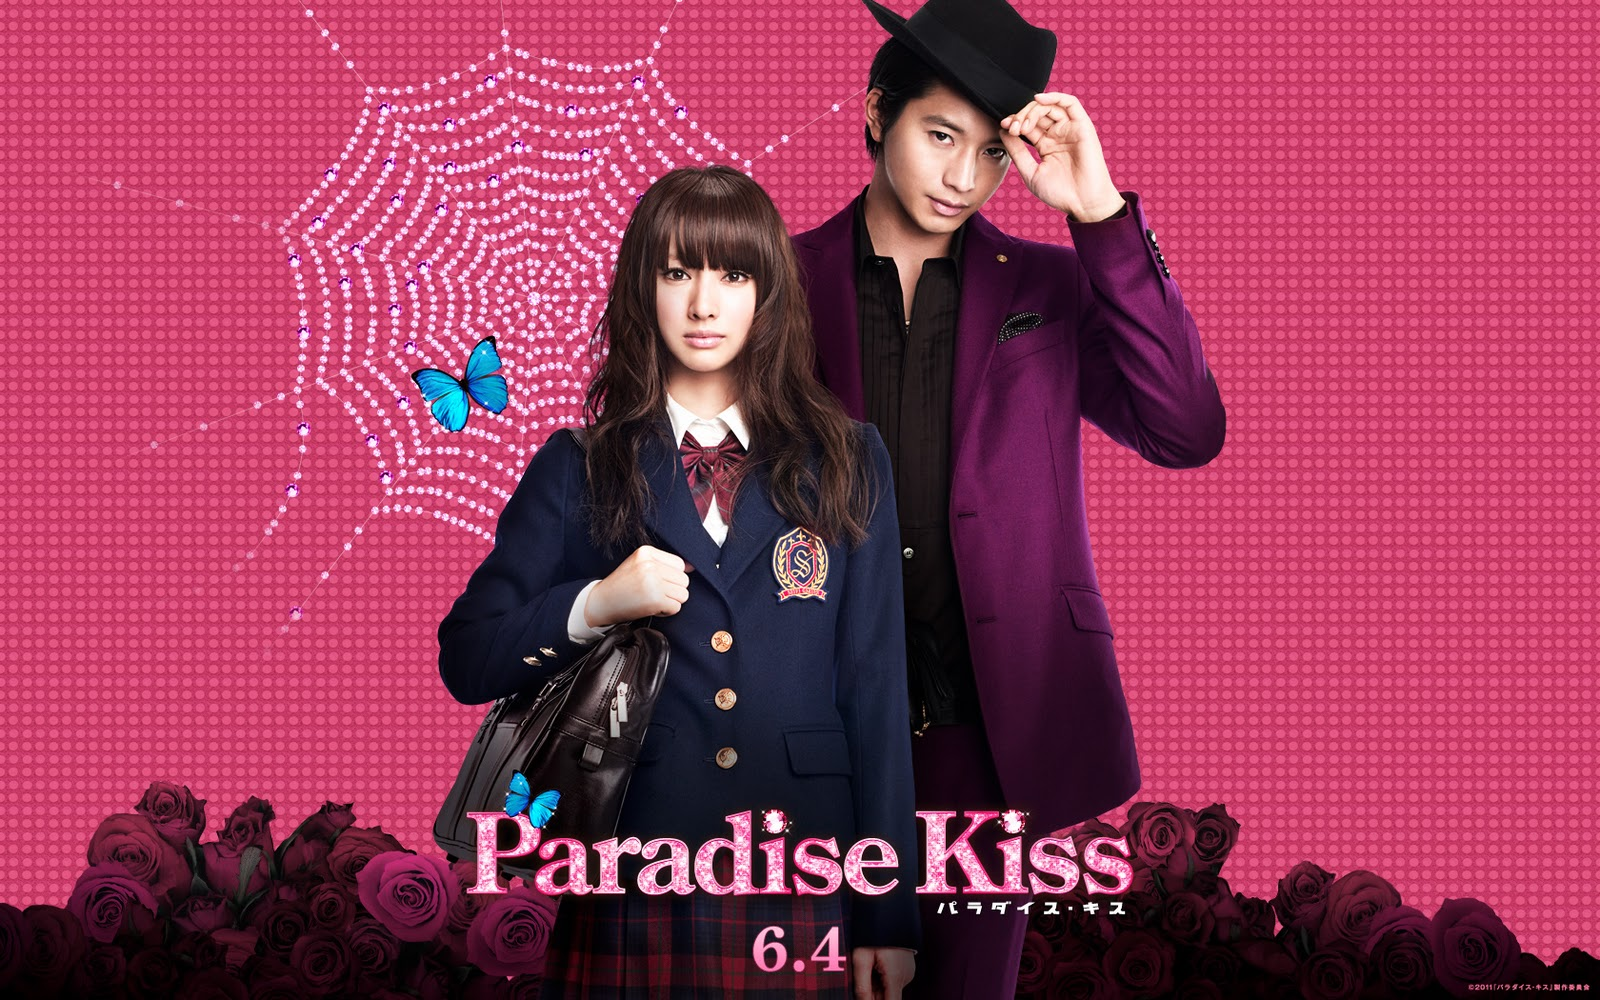 Paradise Kiss The Movie Marrymayweathers Blissful Box